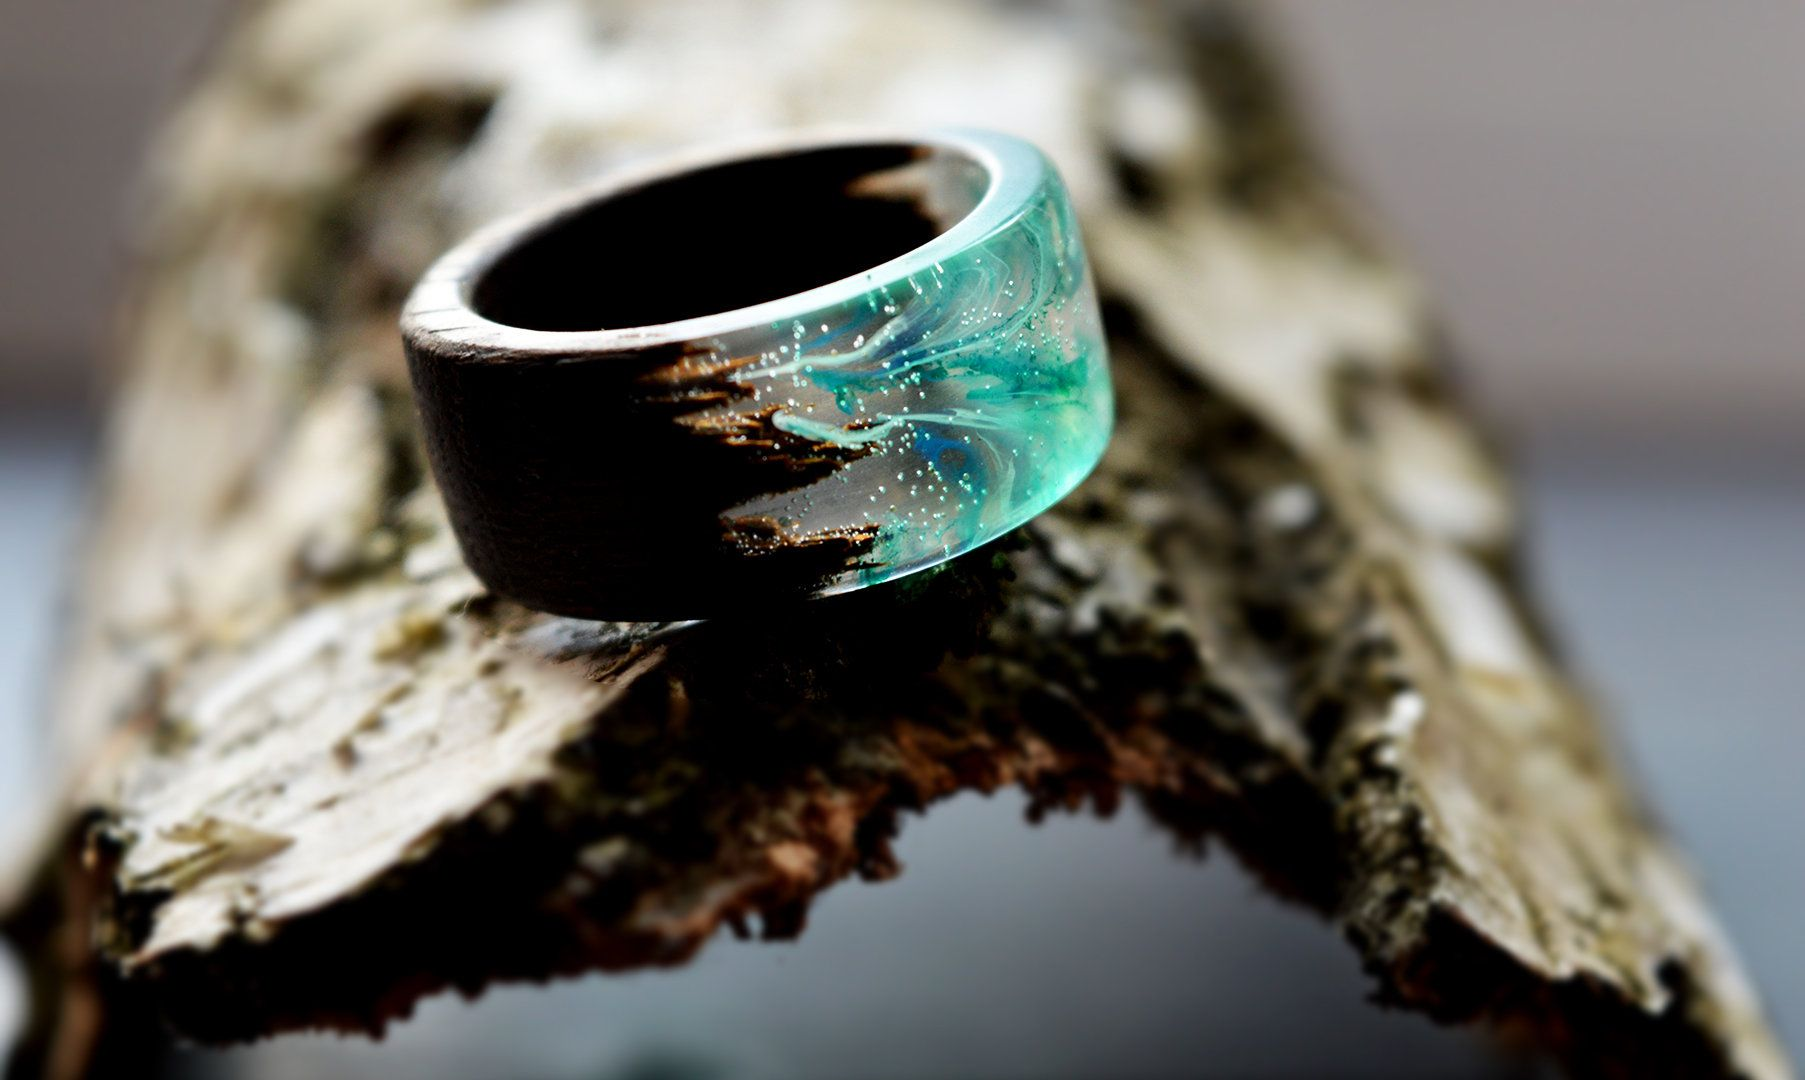 gold epoxy resin ring Wood Rings Womens rings, Anniversary rings wooden engagement men ring galaxy ring Handcrafted Wooden rings